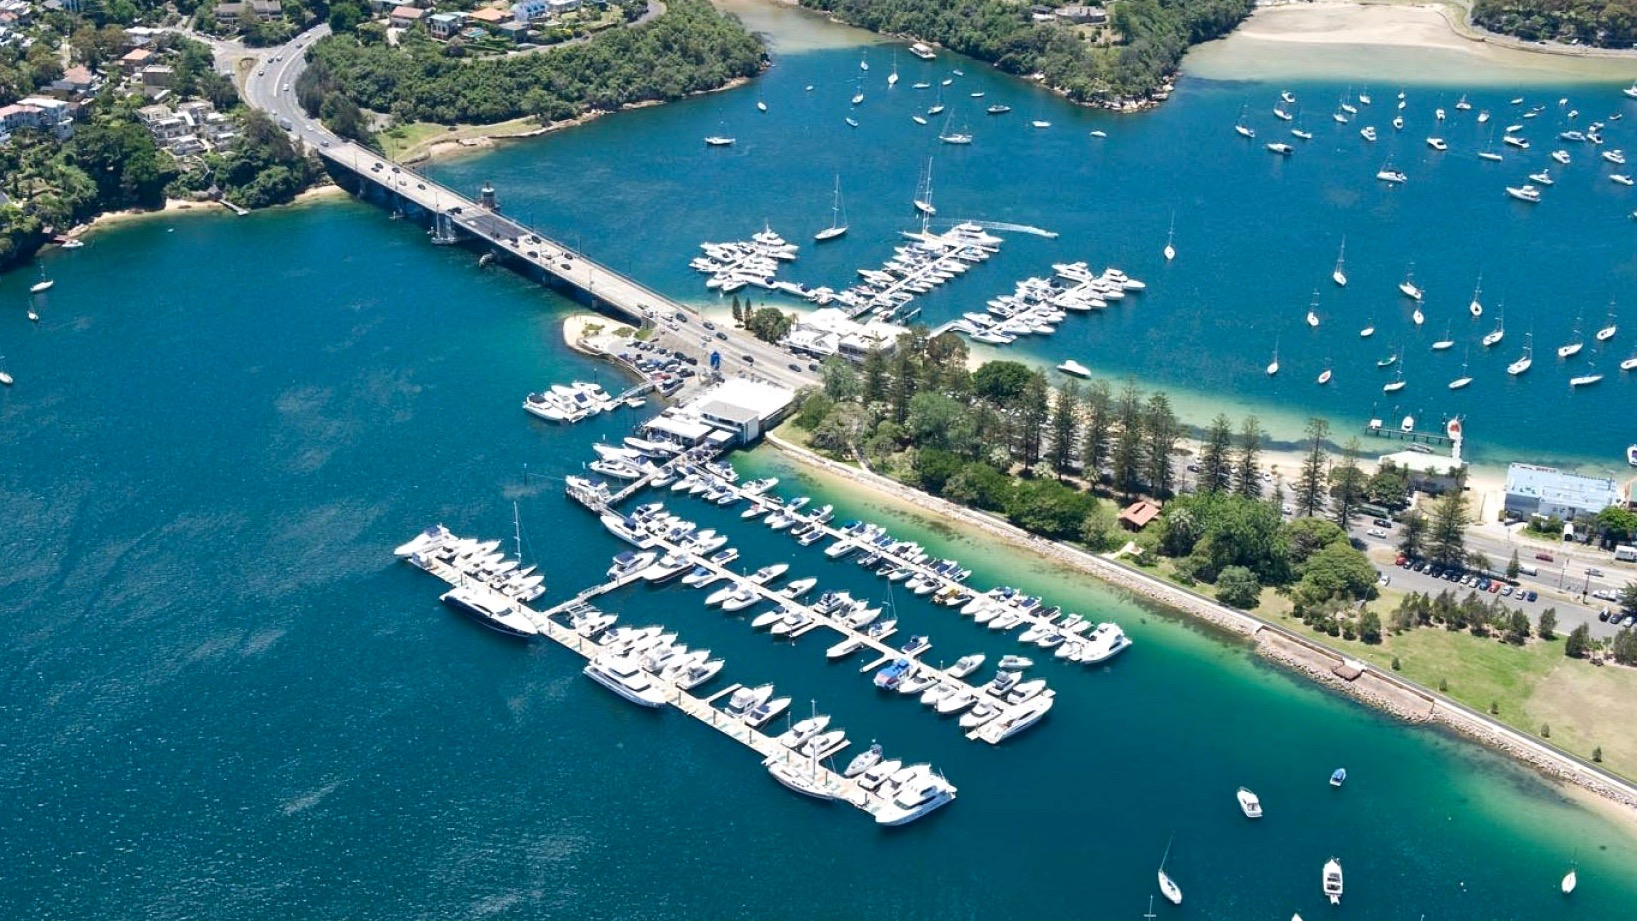 Photo: Aerial Photo of The Spit Marina, Mosman